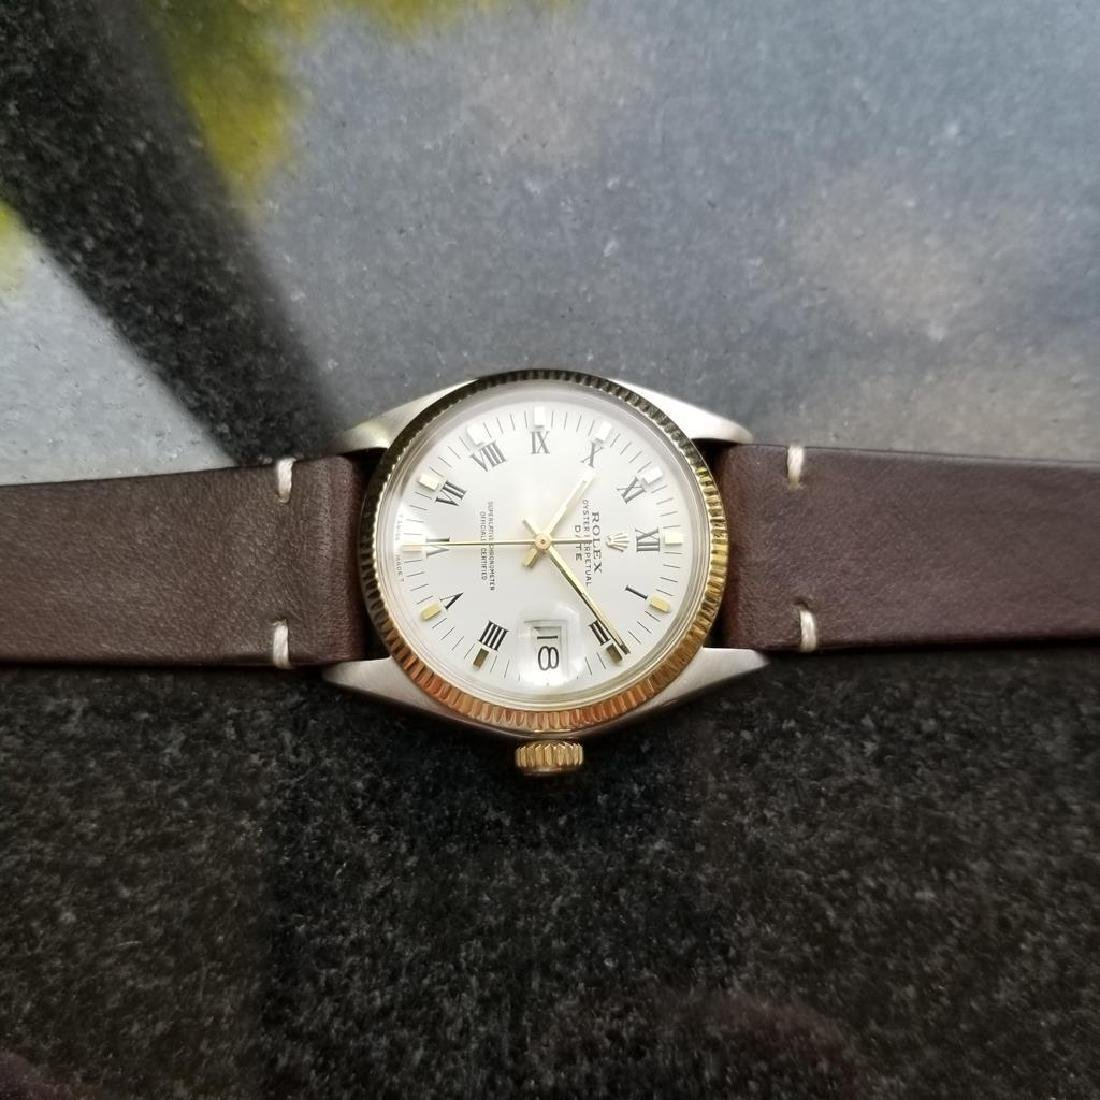 ROLEX Men's 18K Gold & SS Oyster Perpetual Date 1505 - 6